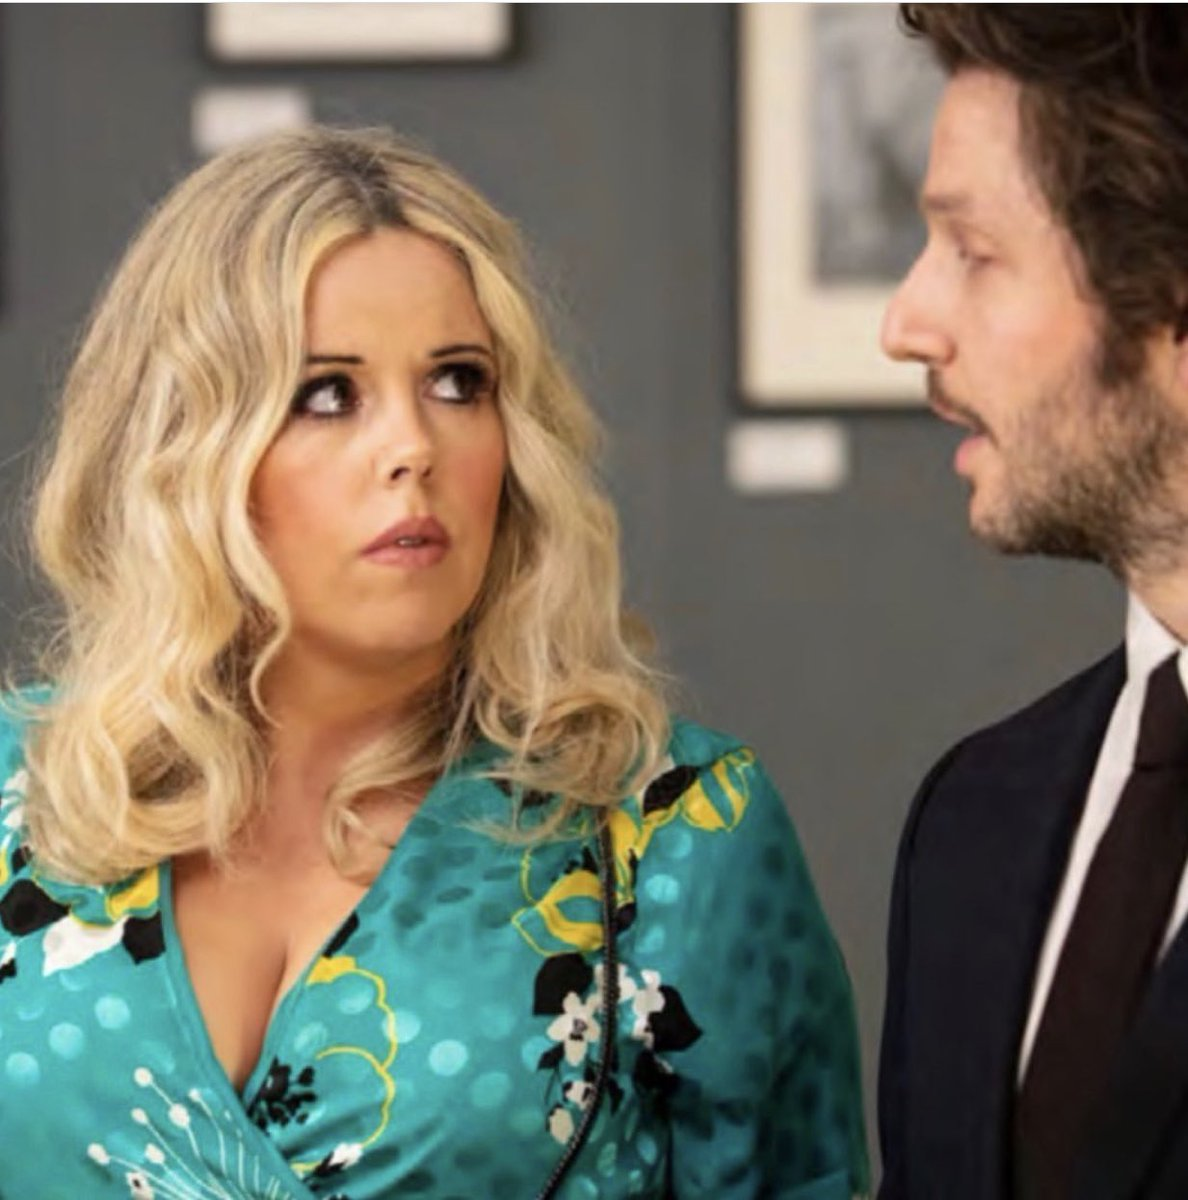 Morning dreamboats,   Alas TONIGHT is the end of this series of #GameFace & we finish with a DOUBLE BILL starting at 10pm & the FINAL ep at 10.30pm on @Channel4  Do please give em a watch 2 of my favourite eps ❤️❤️❤️